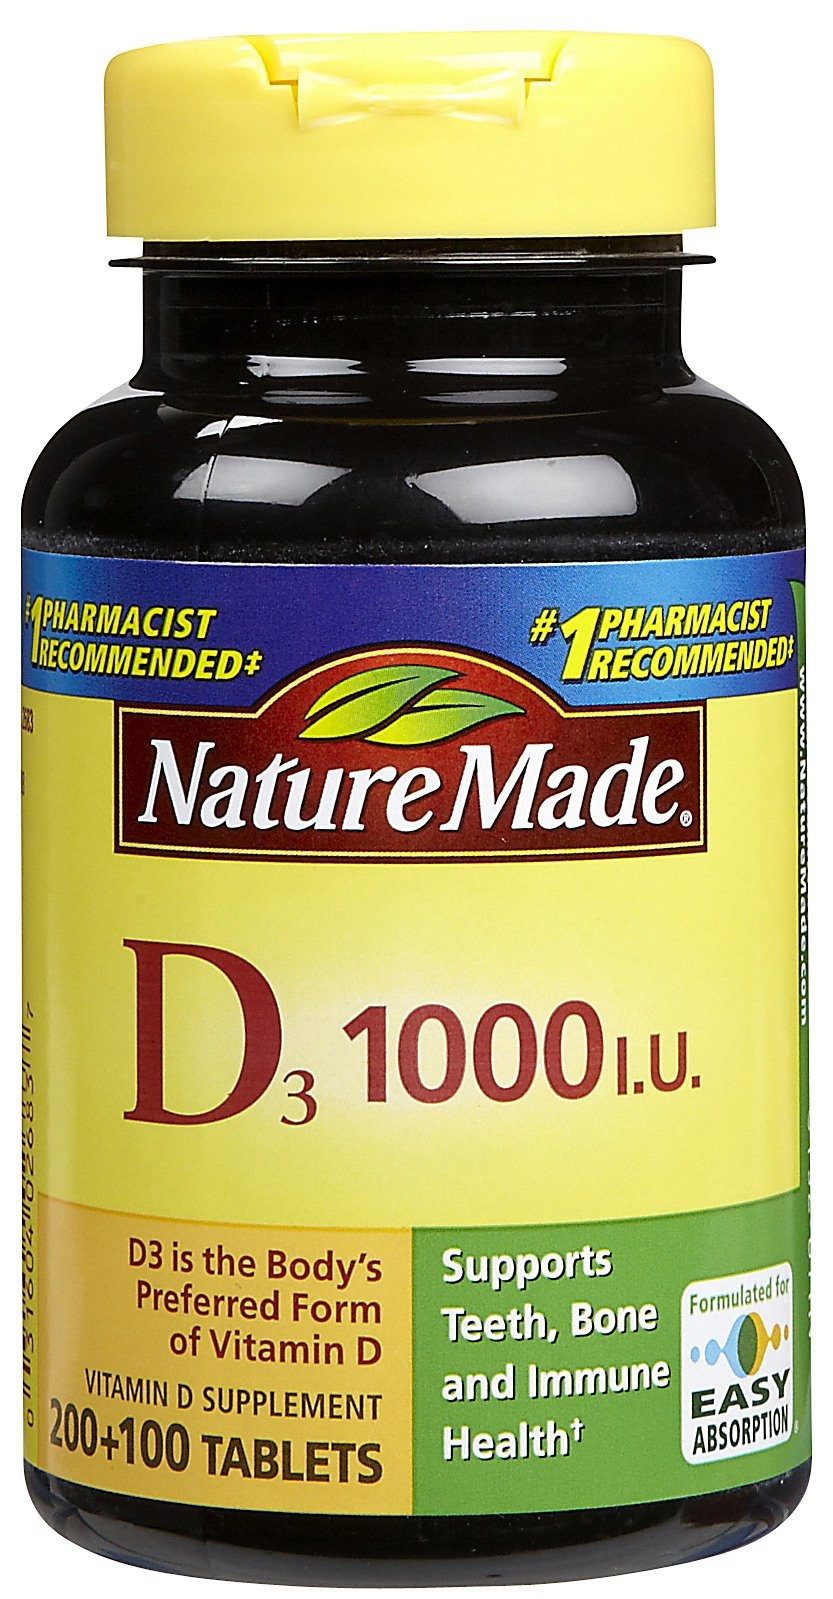 Nature Made Vitamin D Only $1.49 At Walgreens · - Free Printable Nature Made Vitamin Coupons